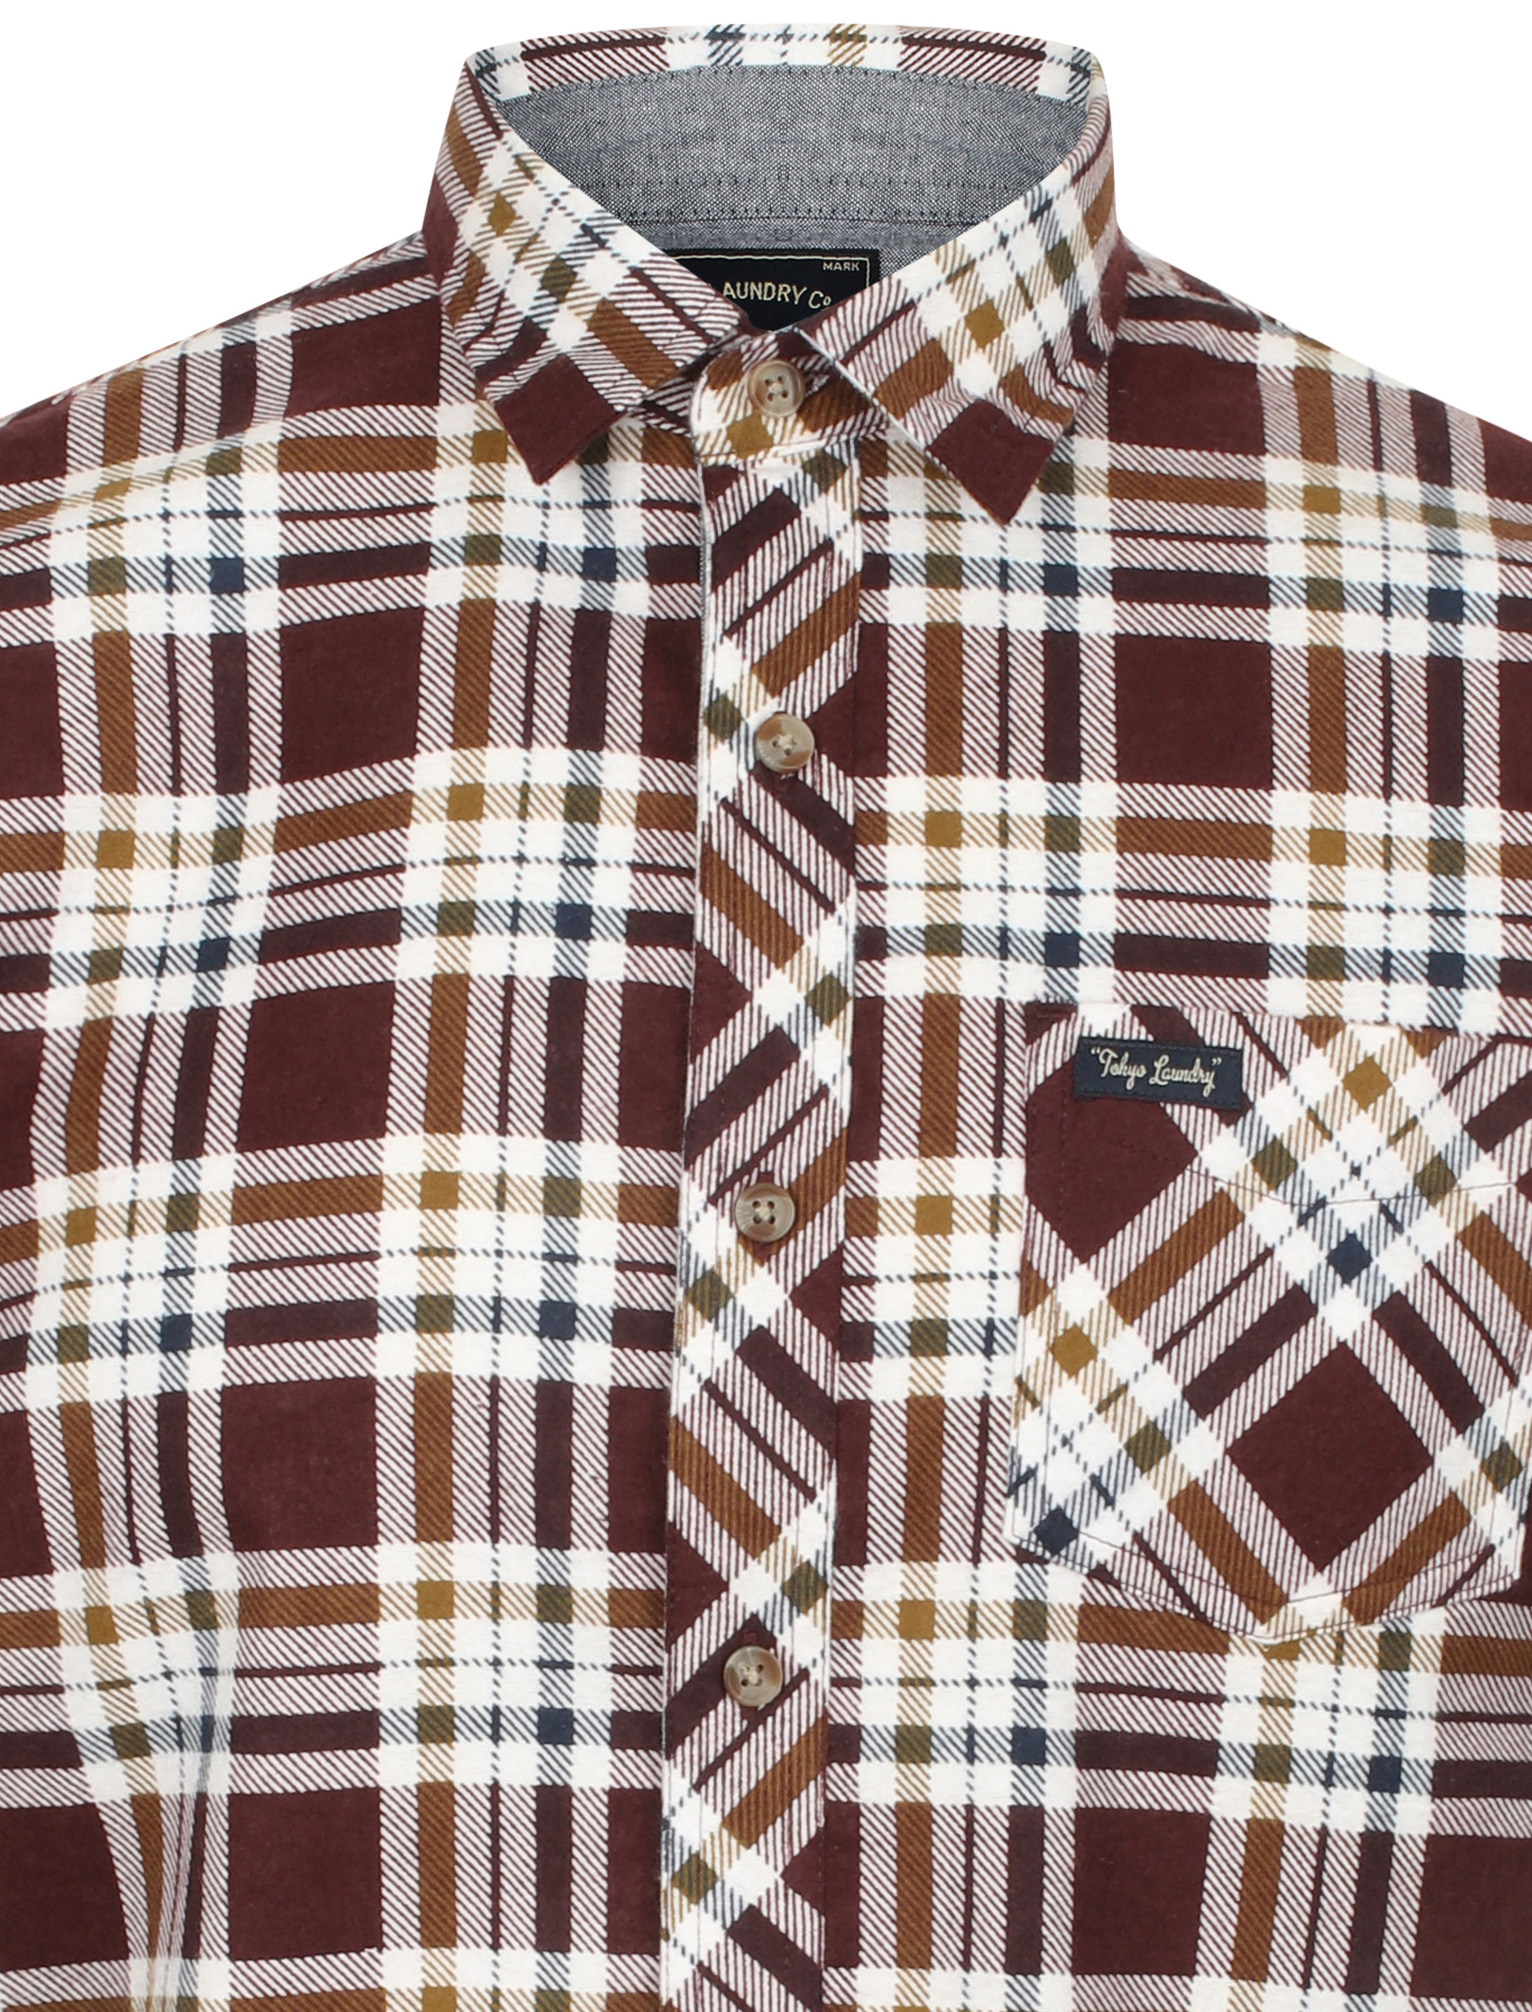 New-Mens-Tokyo-Laundry-Cotton-Long-Sleeve-Checked-Flannel-Shirt-Size-S-XXL thumbnail 13